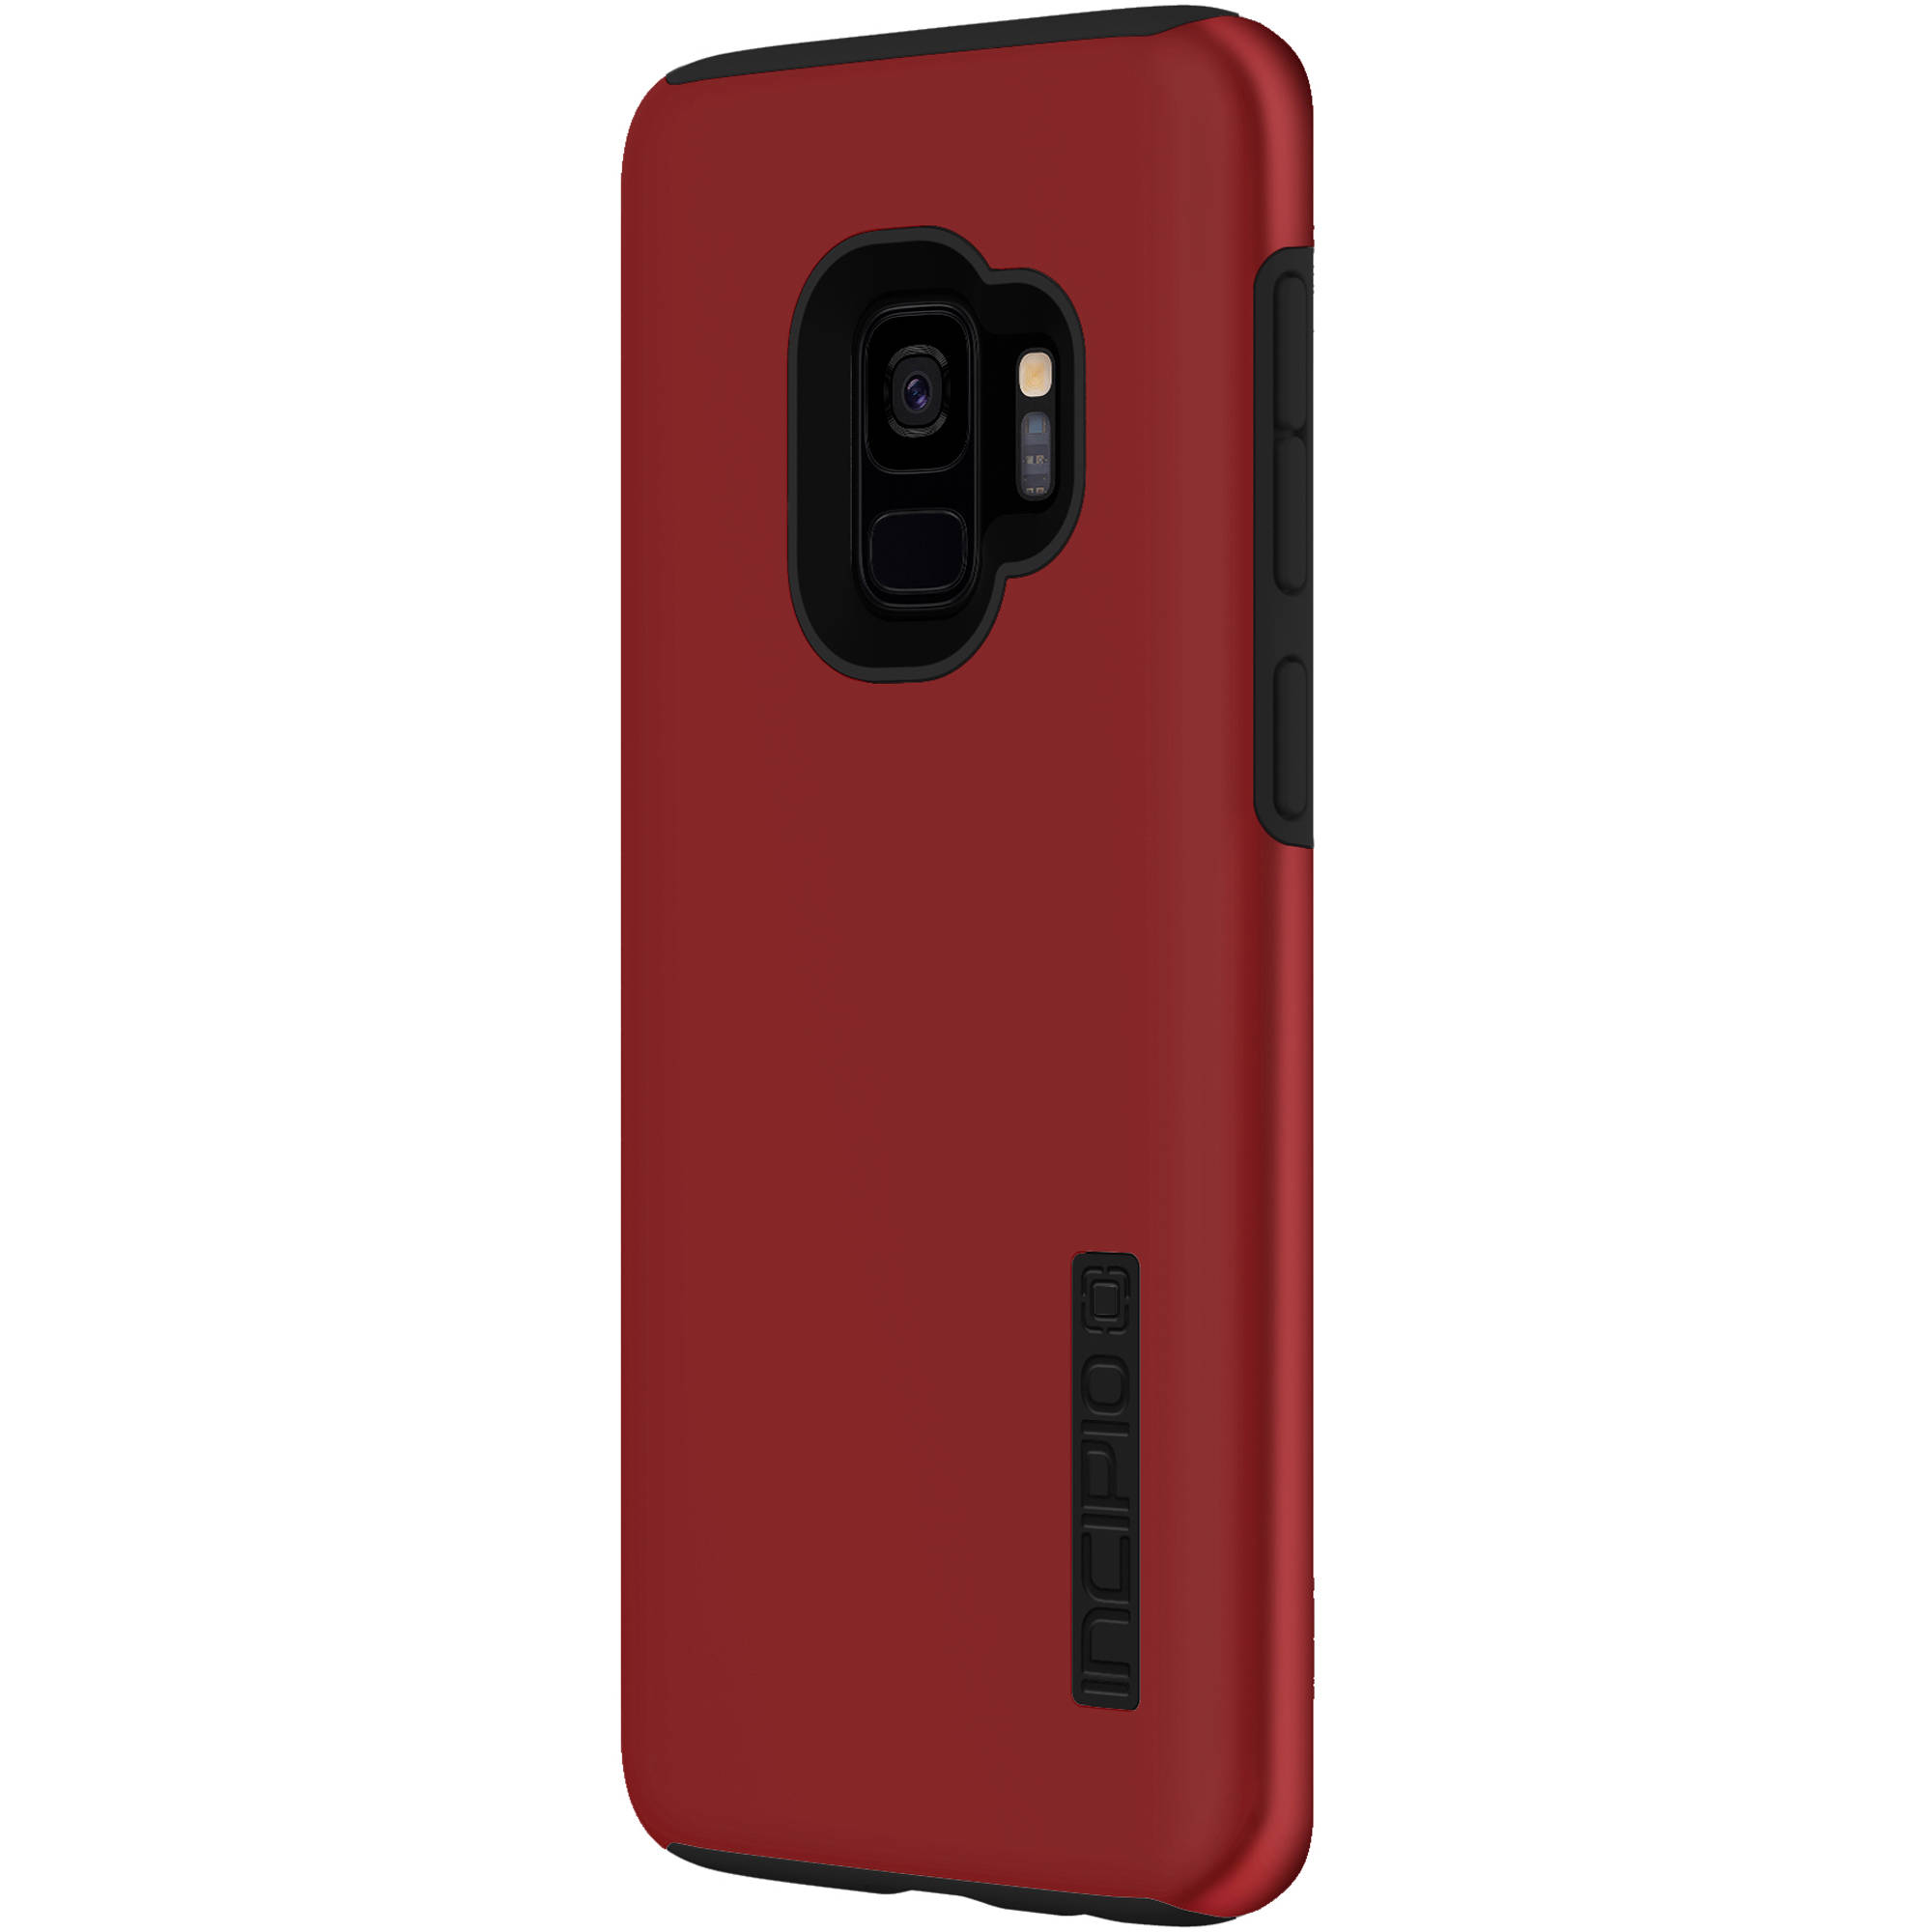 huge discount 09694 595aa Incipio DualPro Case for Galaxy S9 (Iridescent Red/Black)